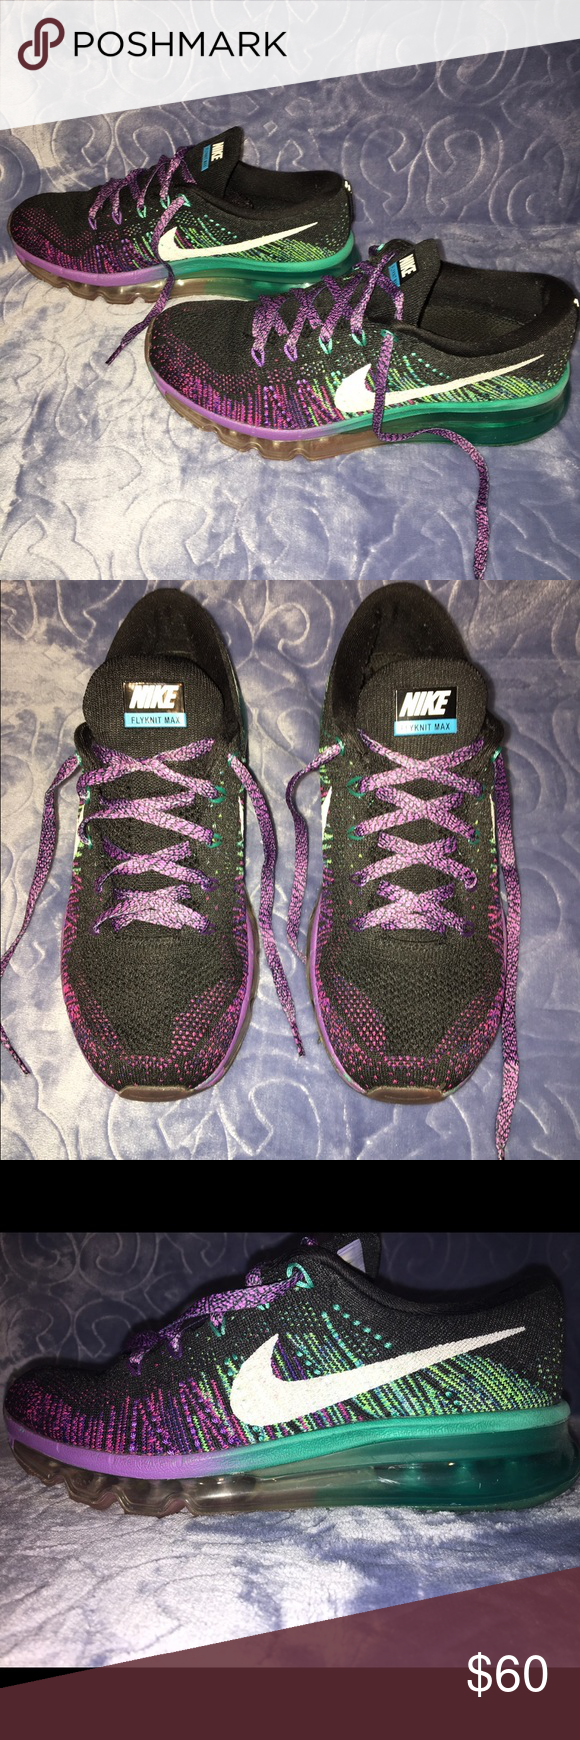 Nike Flyknit Max 6.5 Women Shoes Shoes are 6.5. In women's sizes. Soles look great. The bottom bubbles have a few scratches, but overall they are in good condition. Extremely comfortable and stylish. The colors include black, purple, green, and blue. Nike Shoes Athletic Shoes